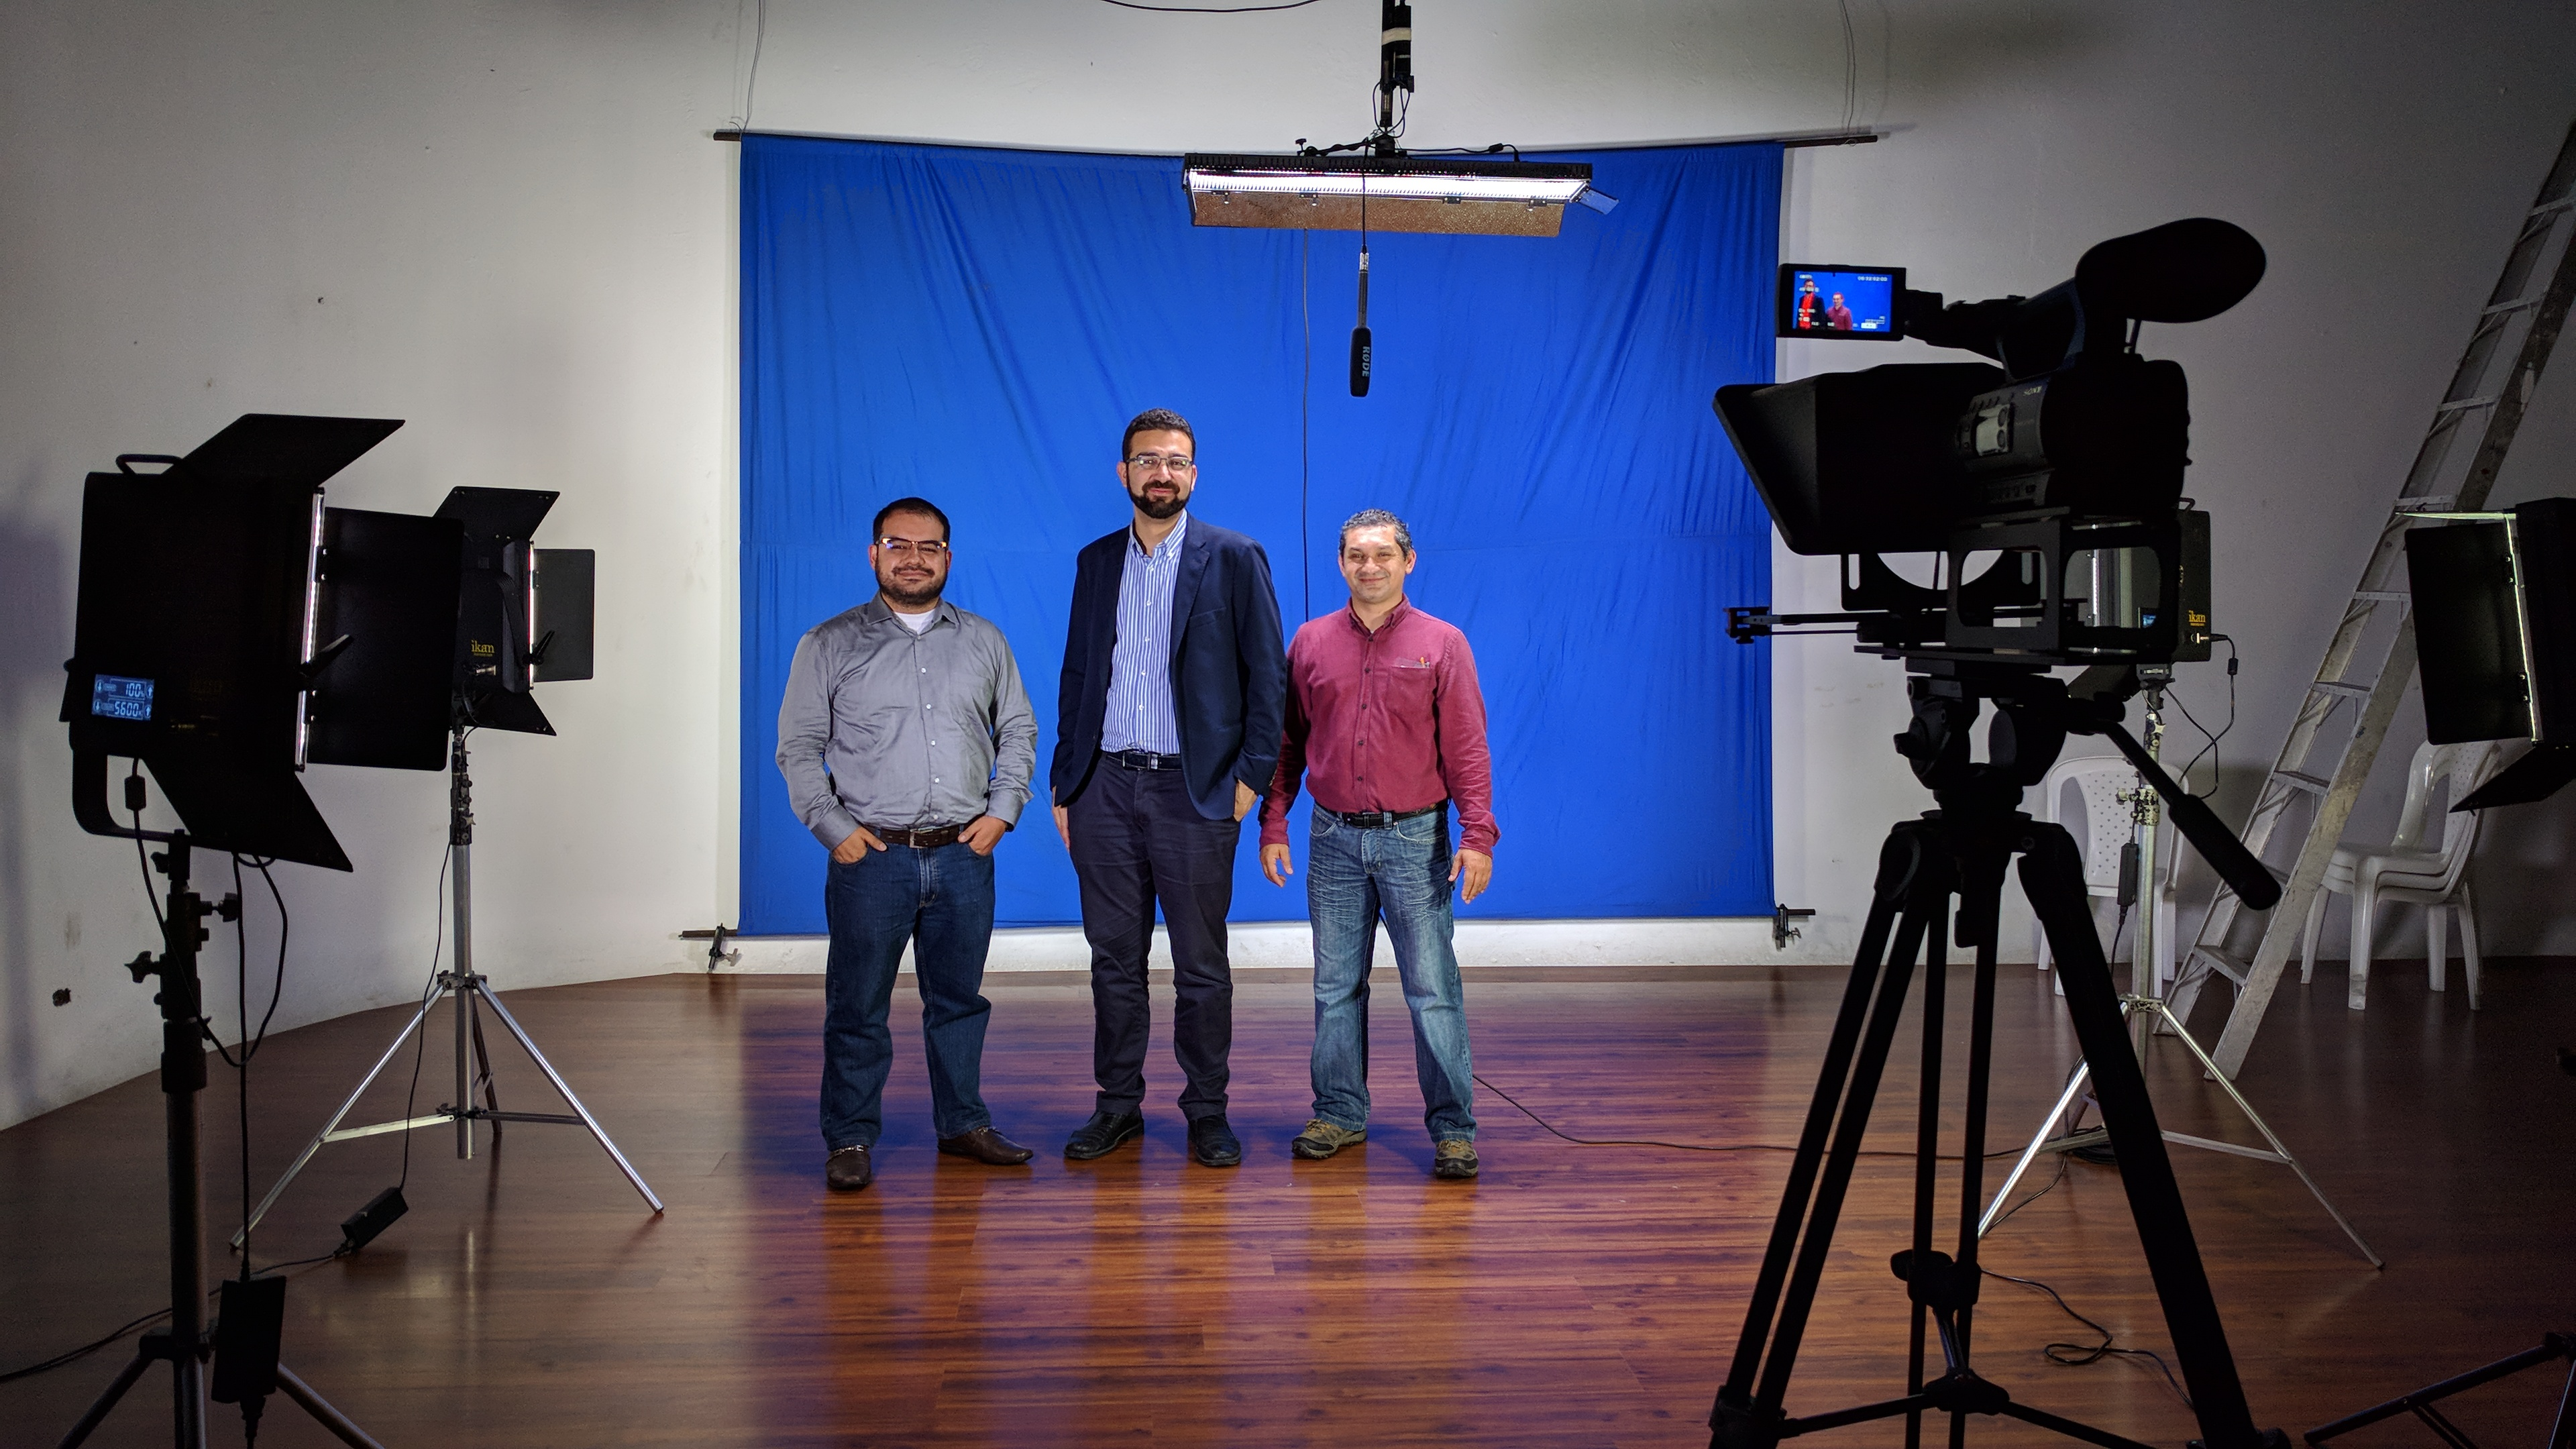 MOOCs recording studio in Universidad del Cauca